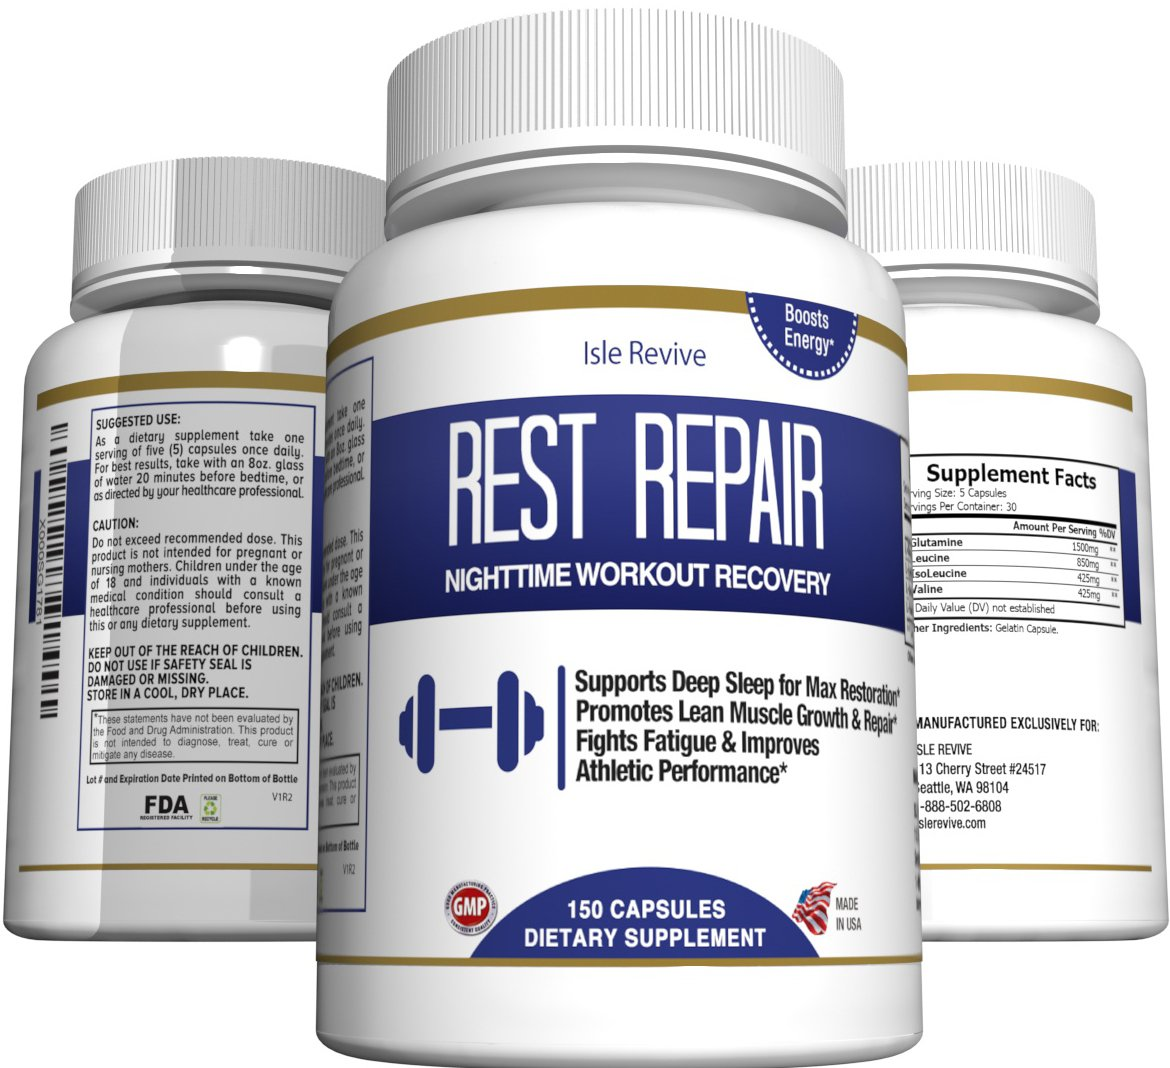 Glutamine BCAA Capsules, Post Workout Muscle Recovery and Sleep Supplement, A Blend of L-Glutamine and Amino Acids, All Natural Pills for Men and Women (150 Capsules, 30 Day Supply) - Rest Repair